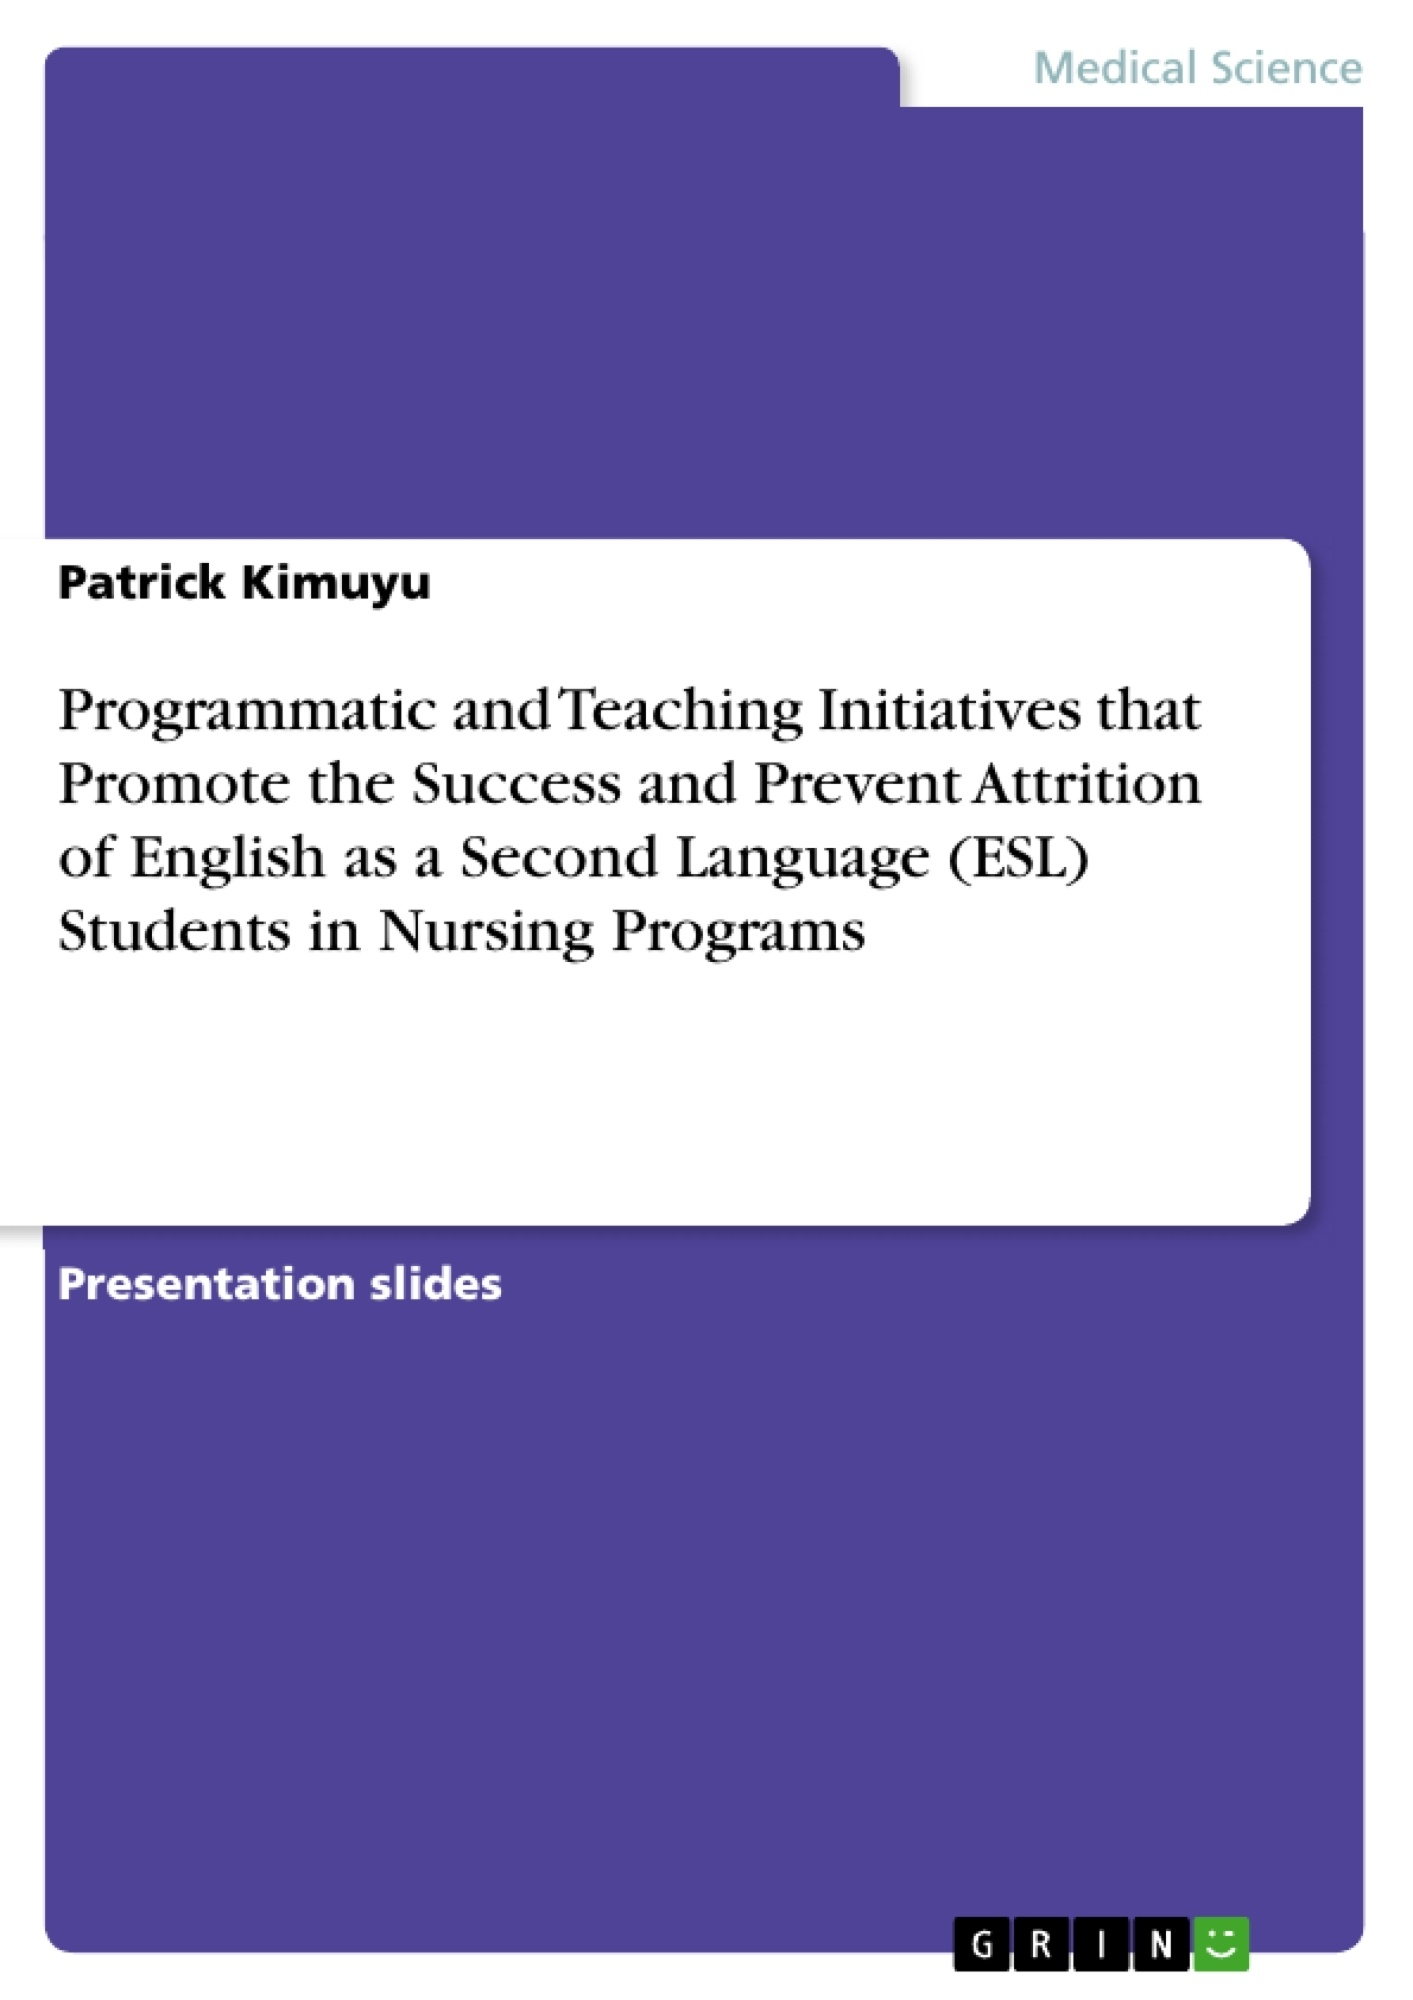 Title: Programmatic and Teaching Initiatives that Promote the Success and Prevent Attrition of English as a Second Language (ESL) Students in Nursing Programs